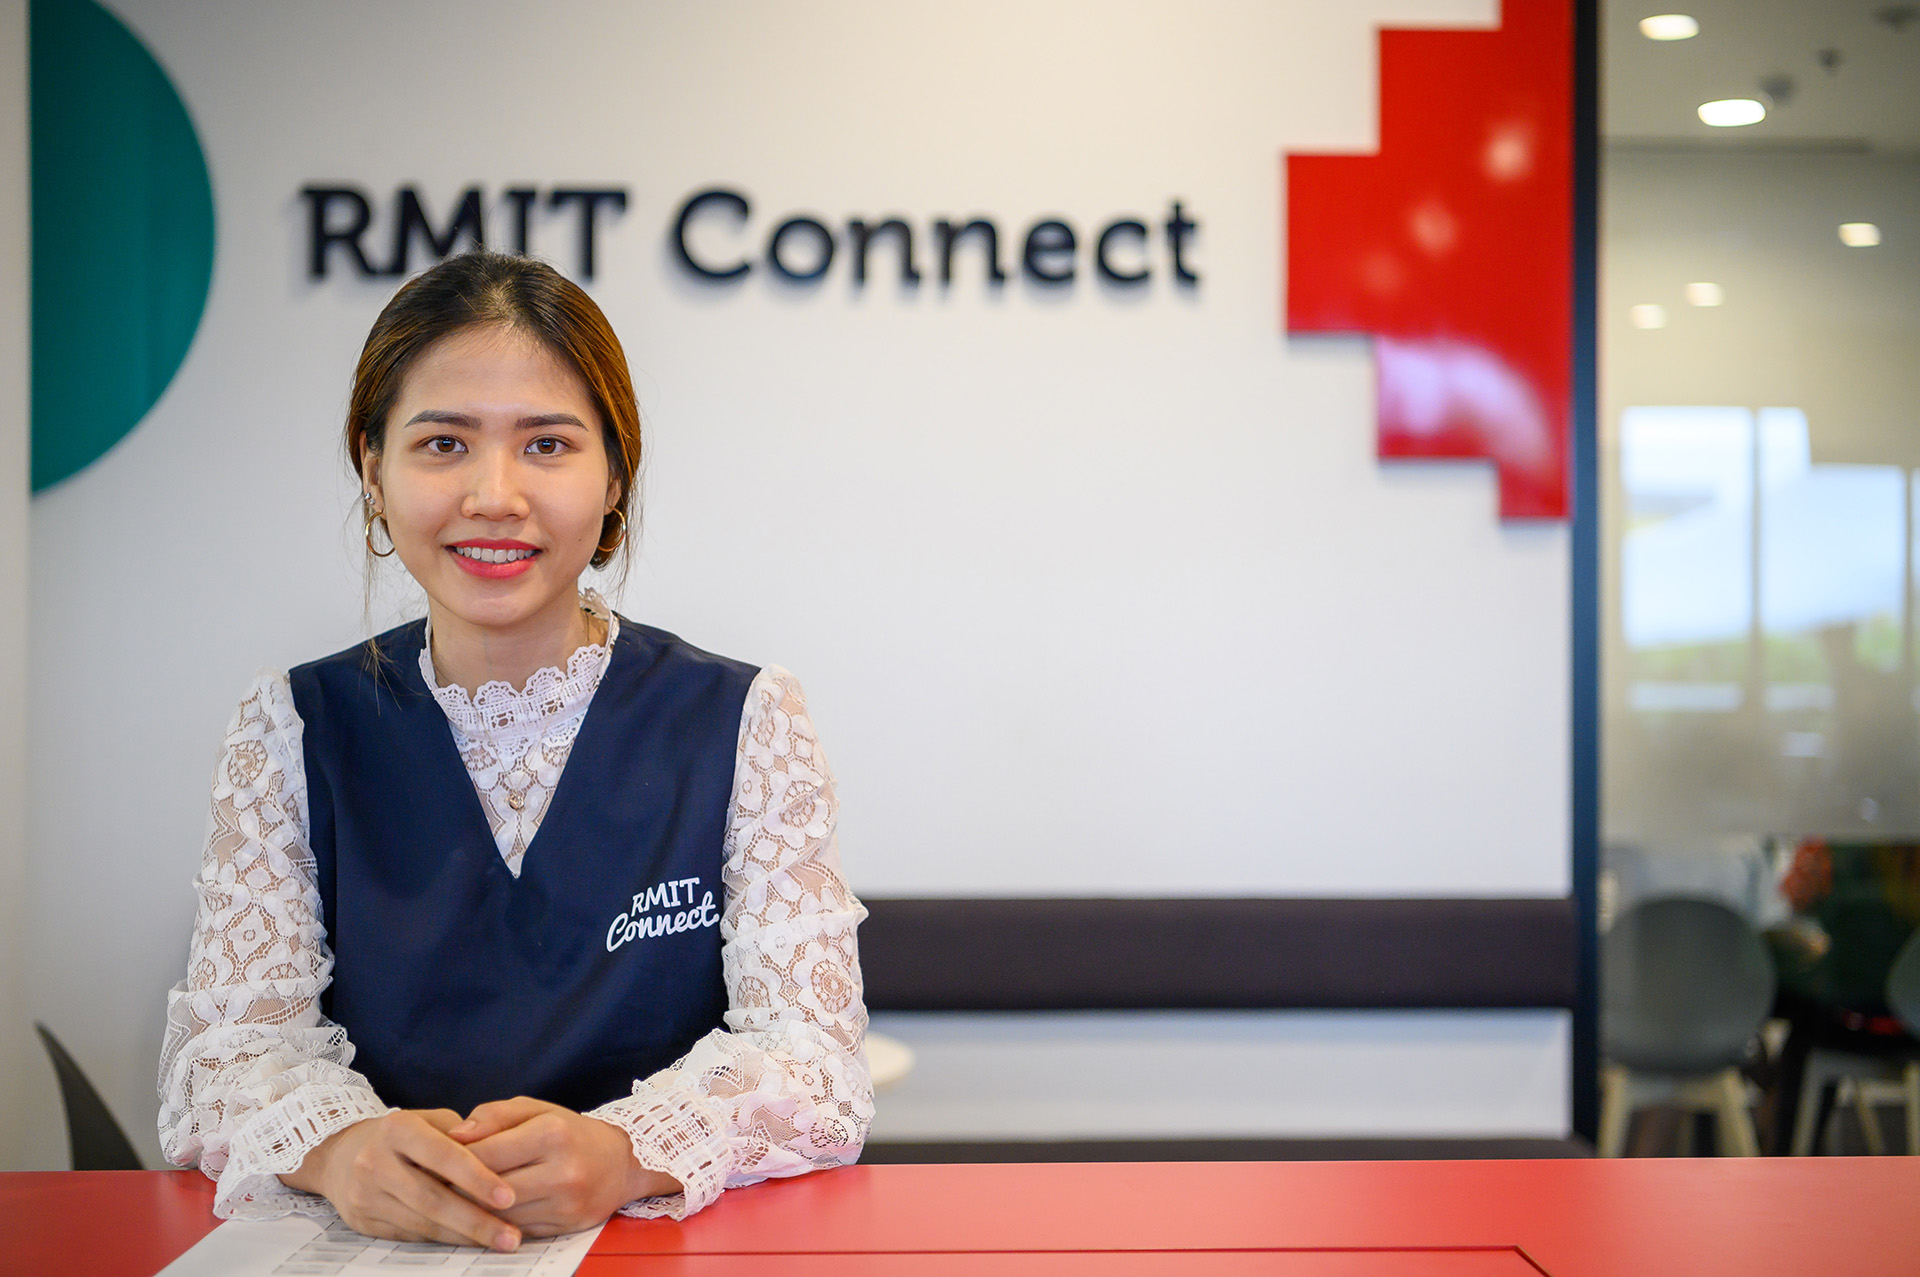 sgs rmit connect